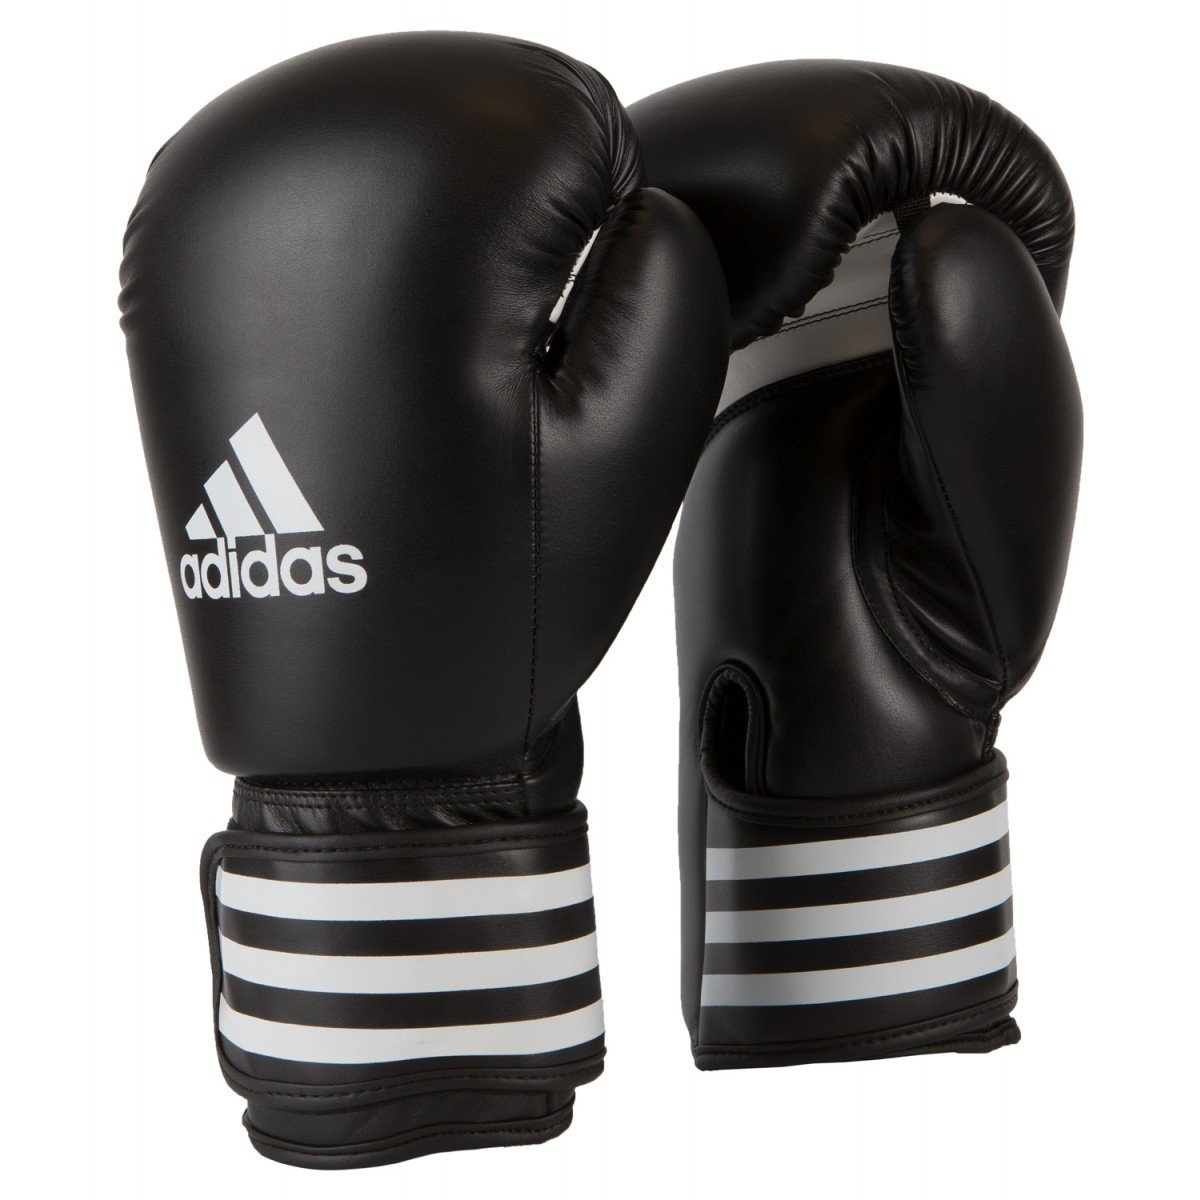 ADIDAS BOXING GLOVES KICKPOWER 100 Black 16oz